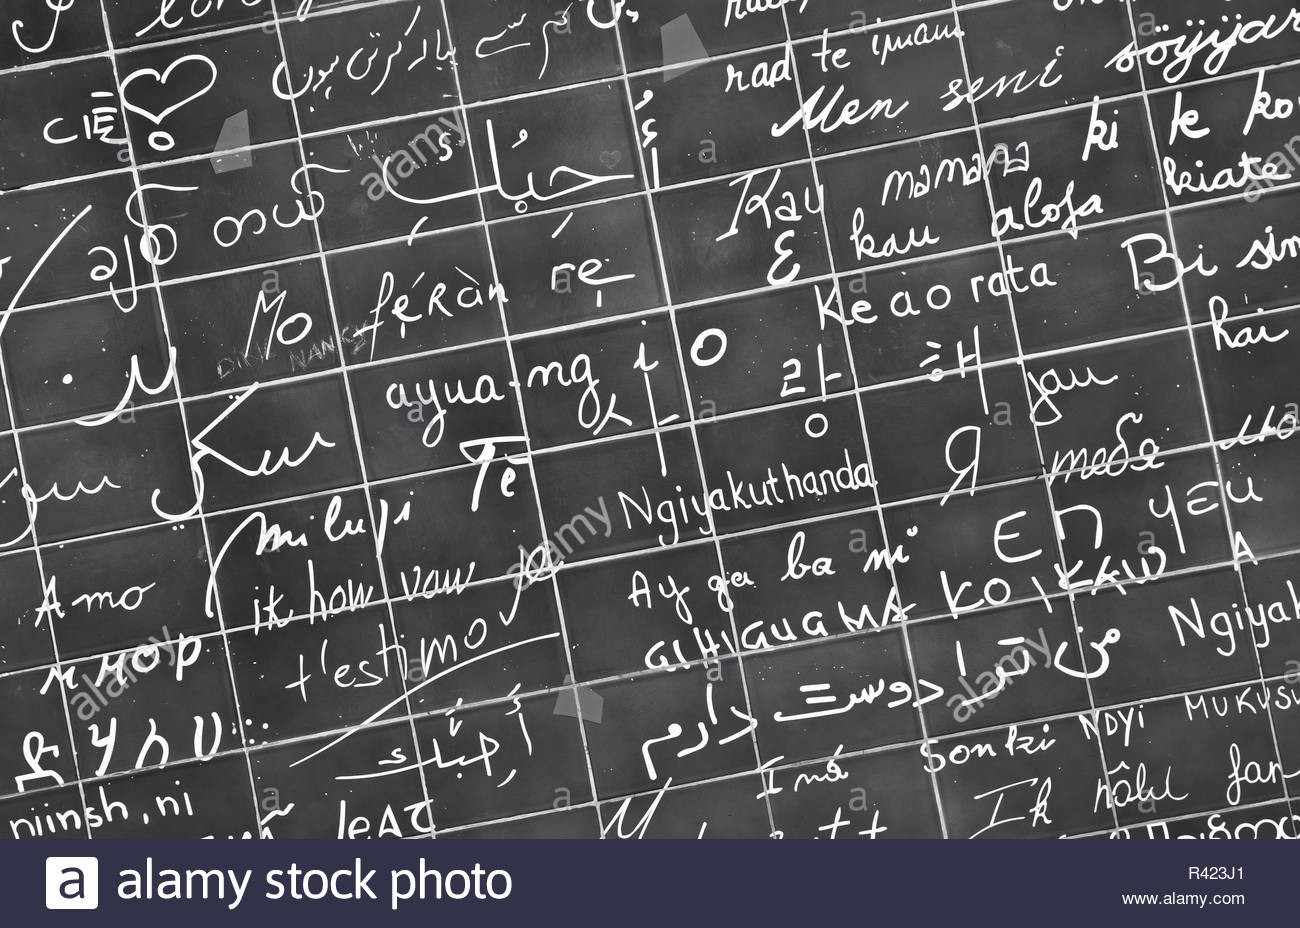 I love you in 311 languages Stock Photo